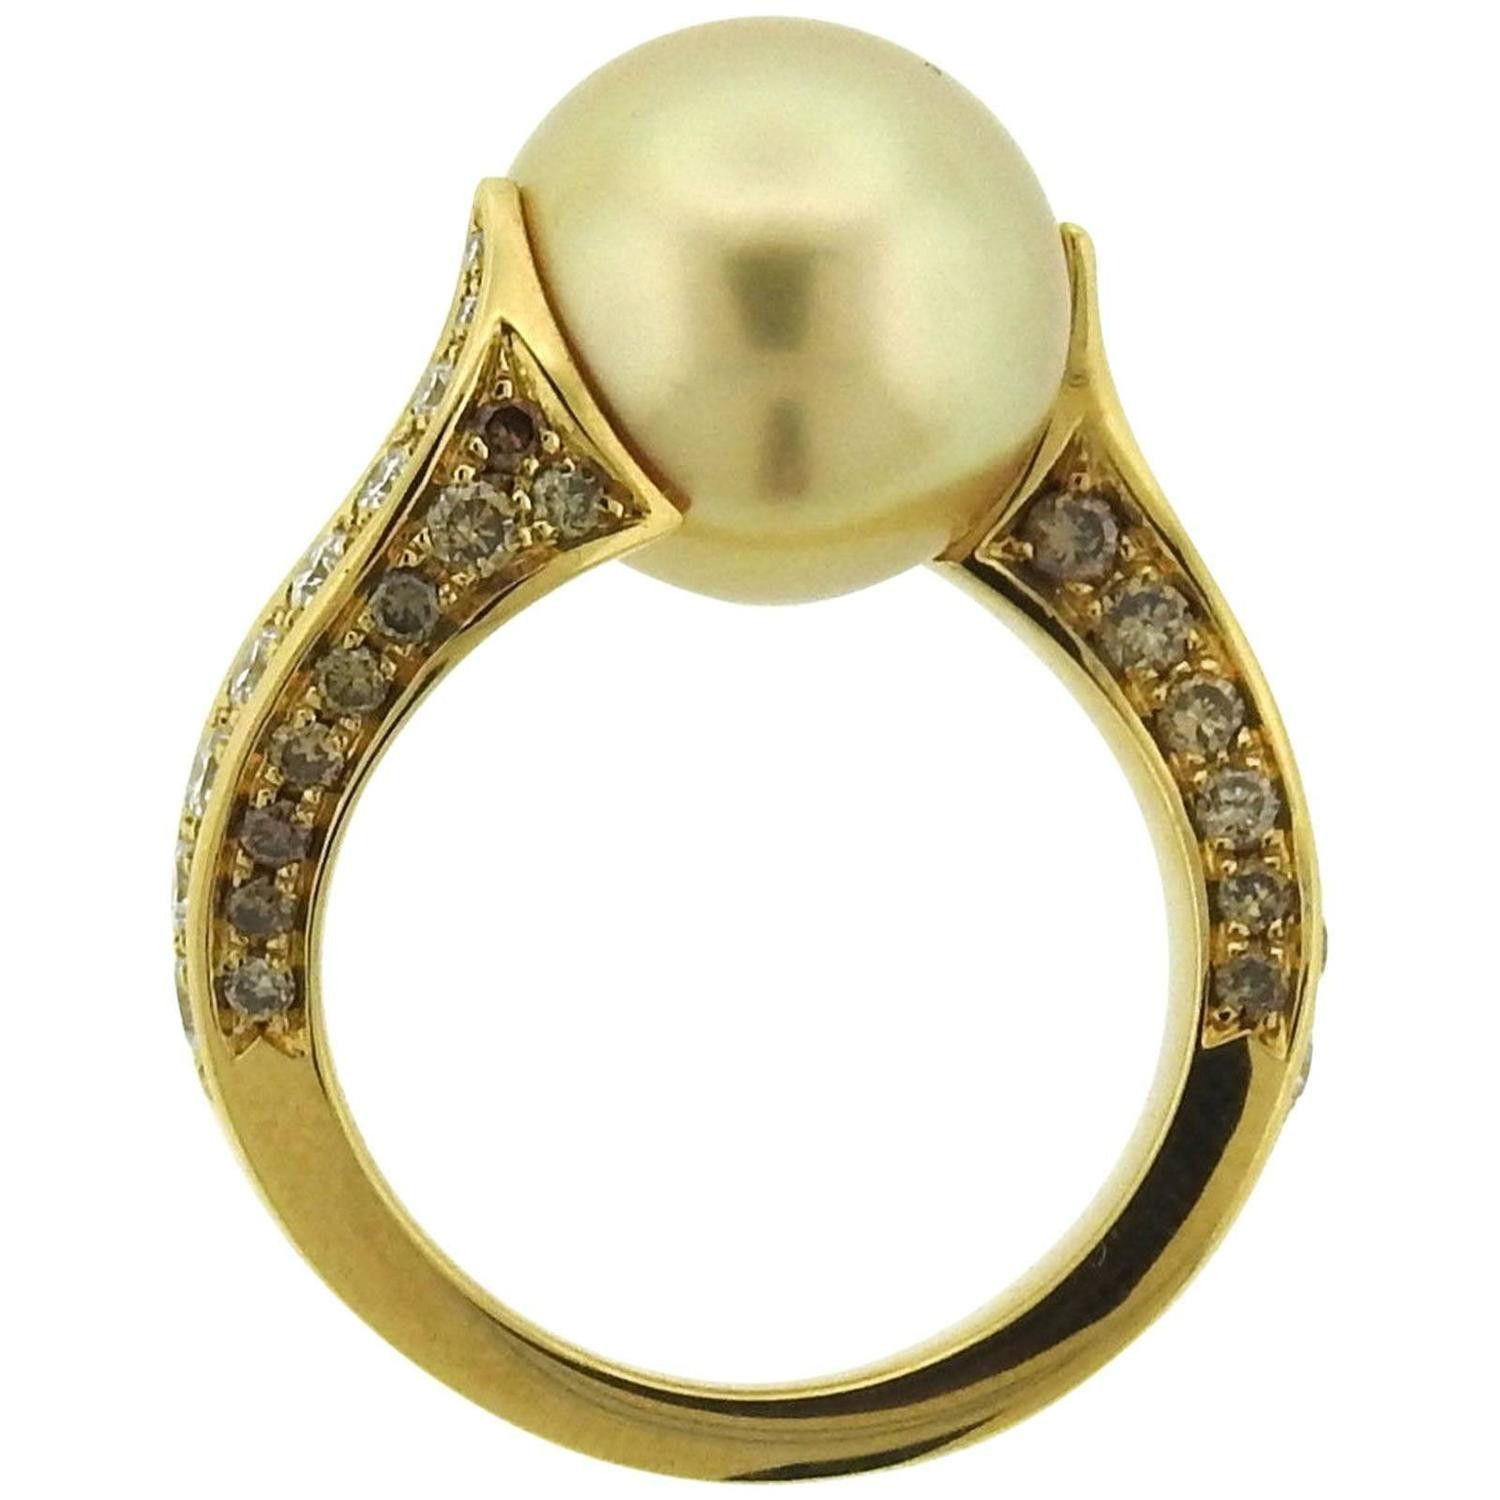 south gold quality engagement gsol pearl classic main aaa solitaire ring rings sea golden sizes